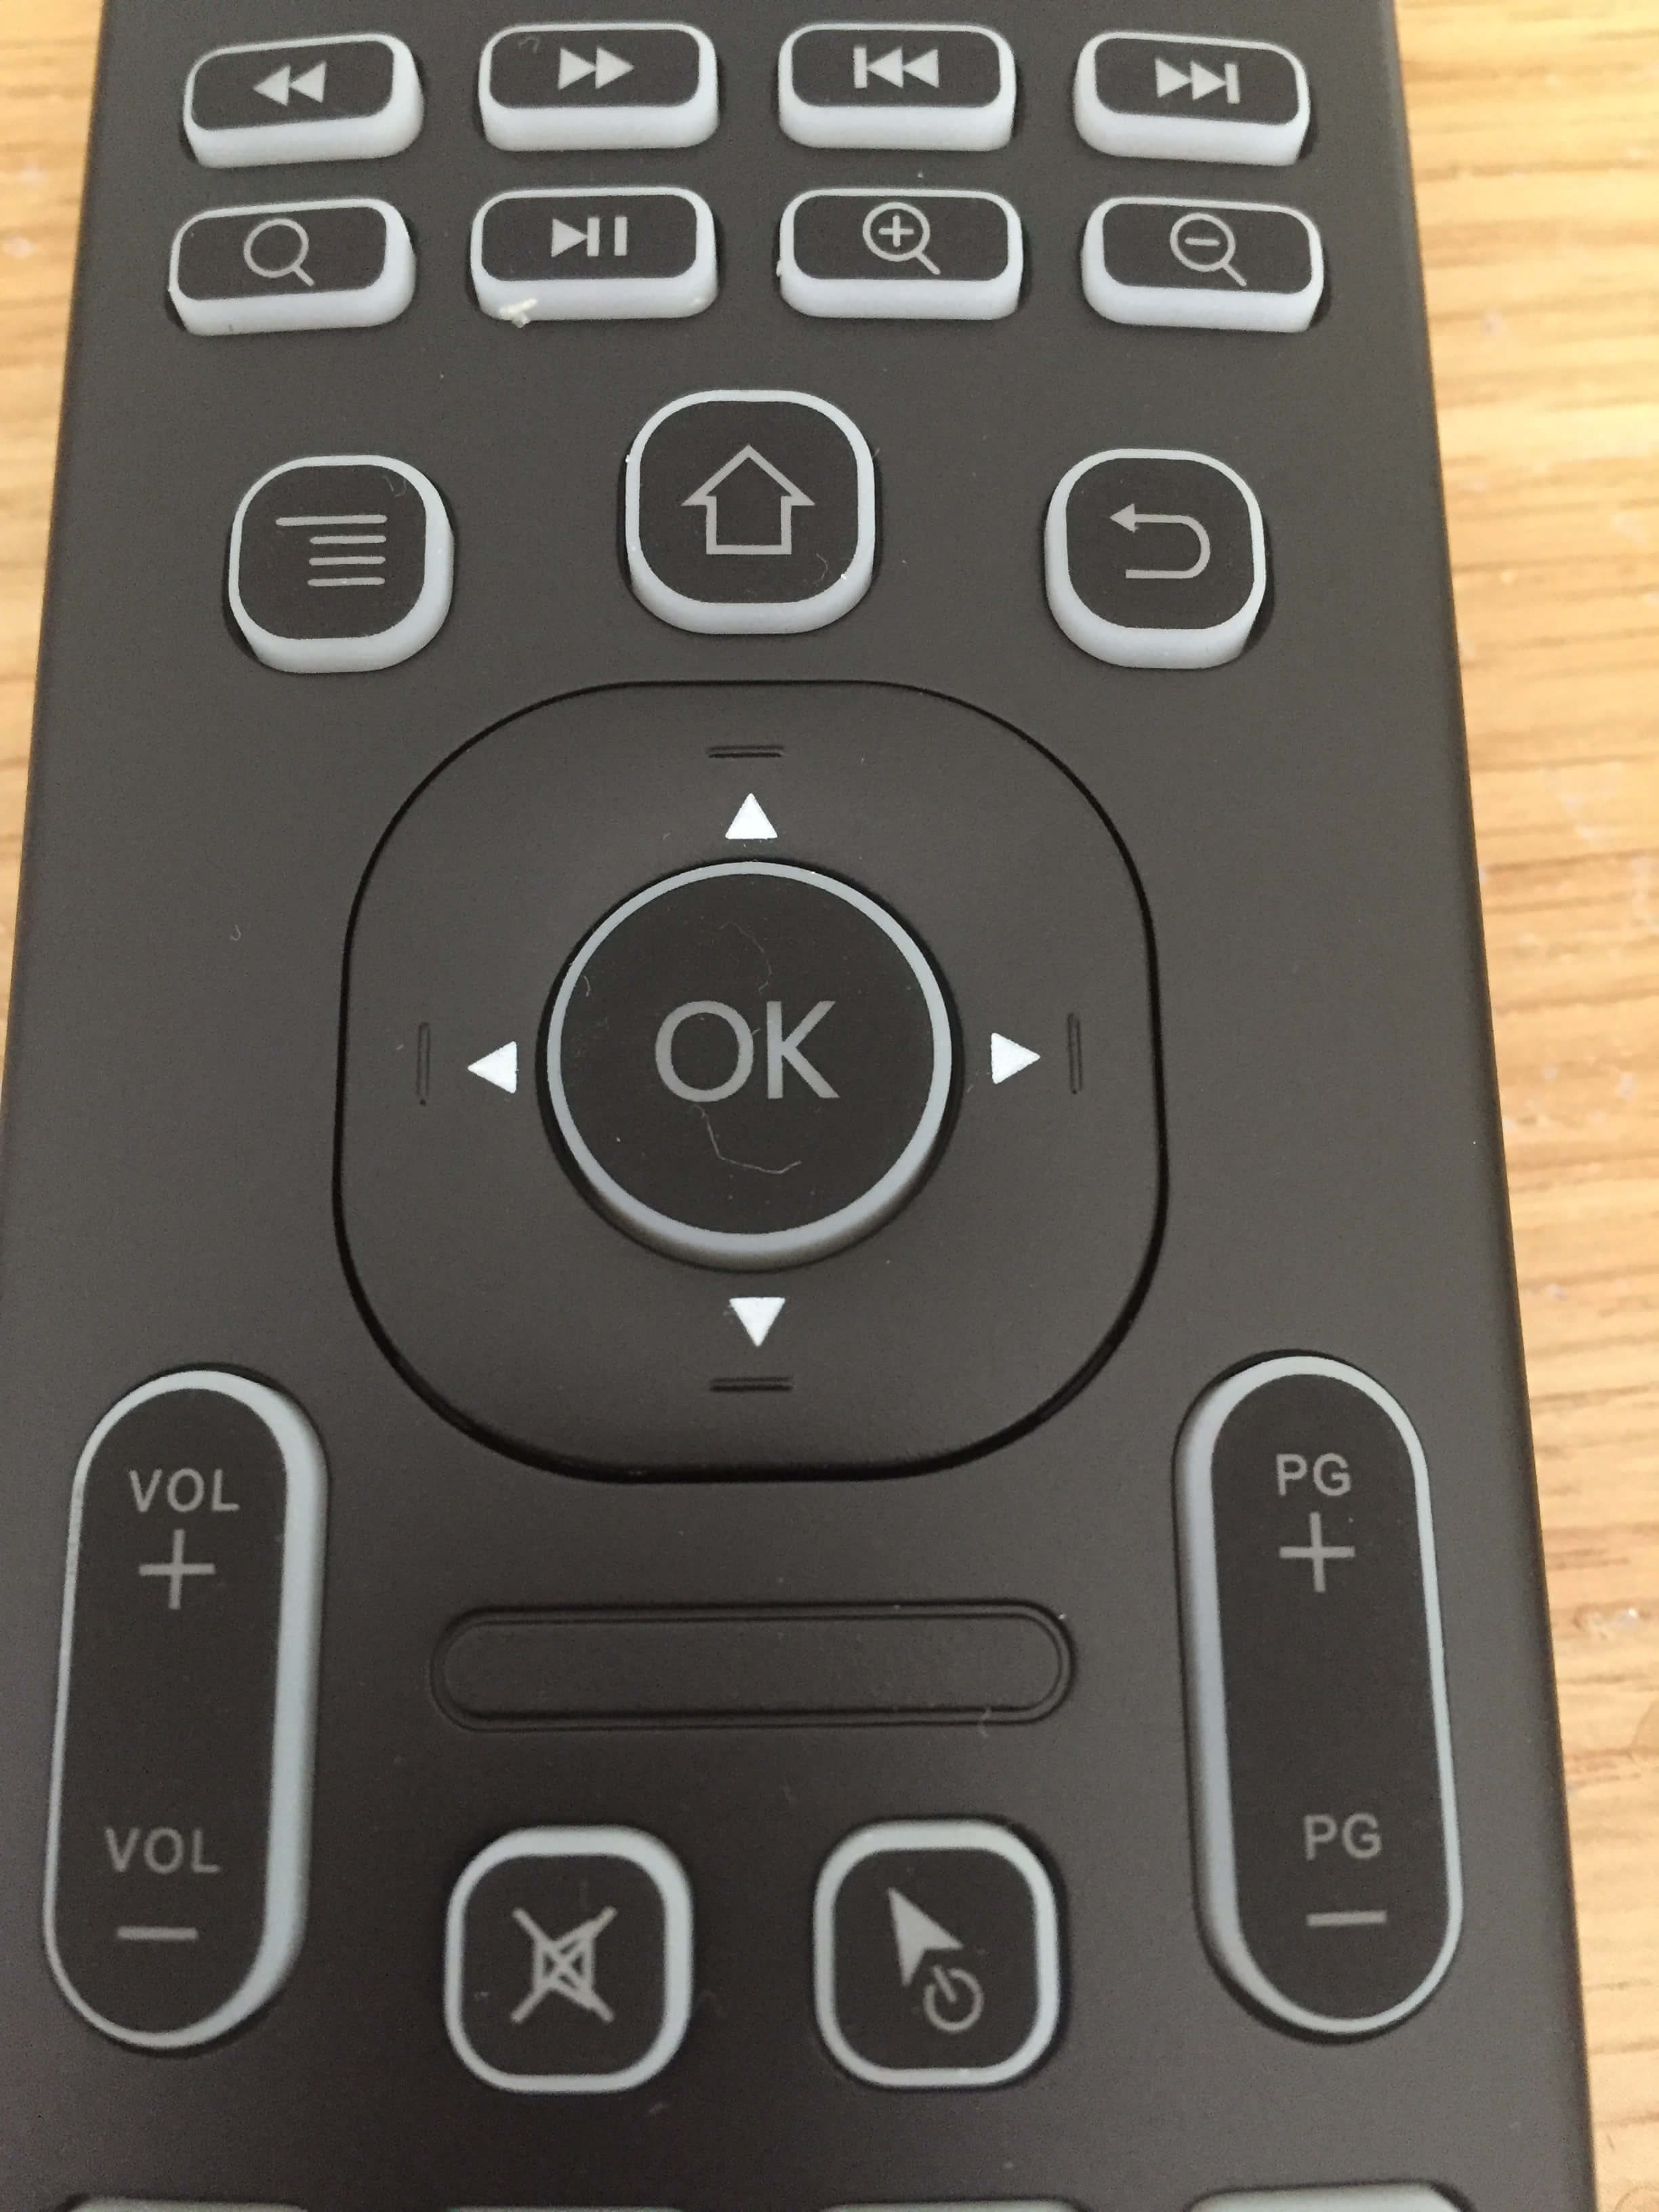 S77 Pro Plus Backlit Remote Wireless Qwerty Keyboard - Air Mouse Review